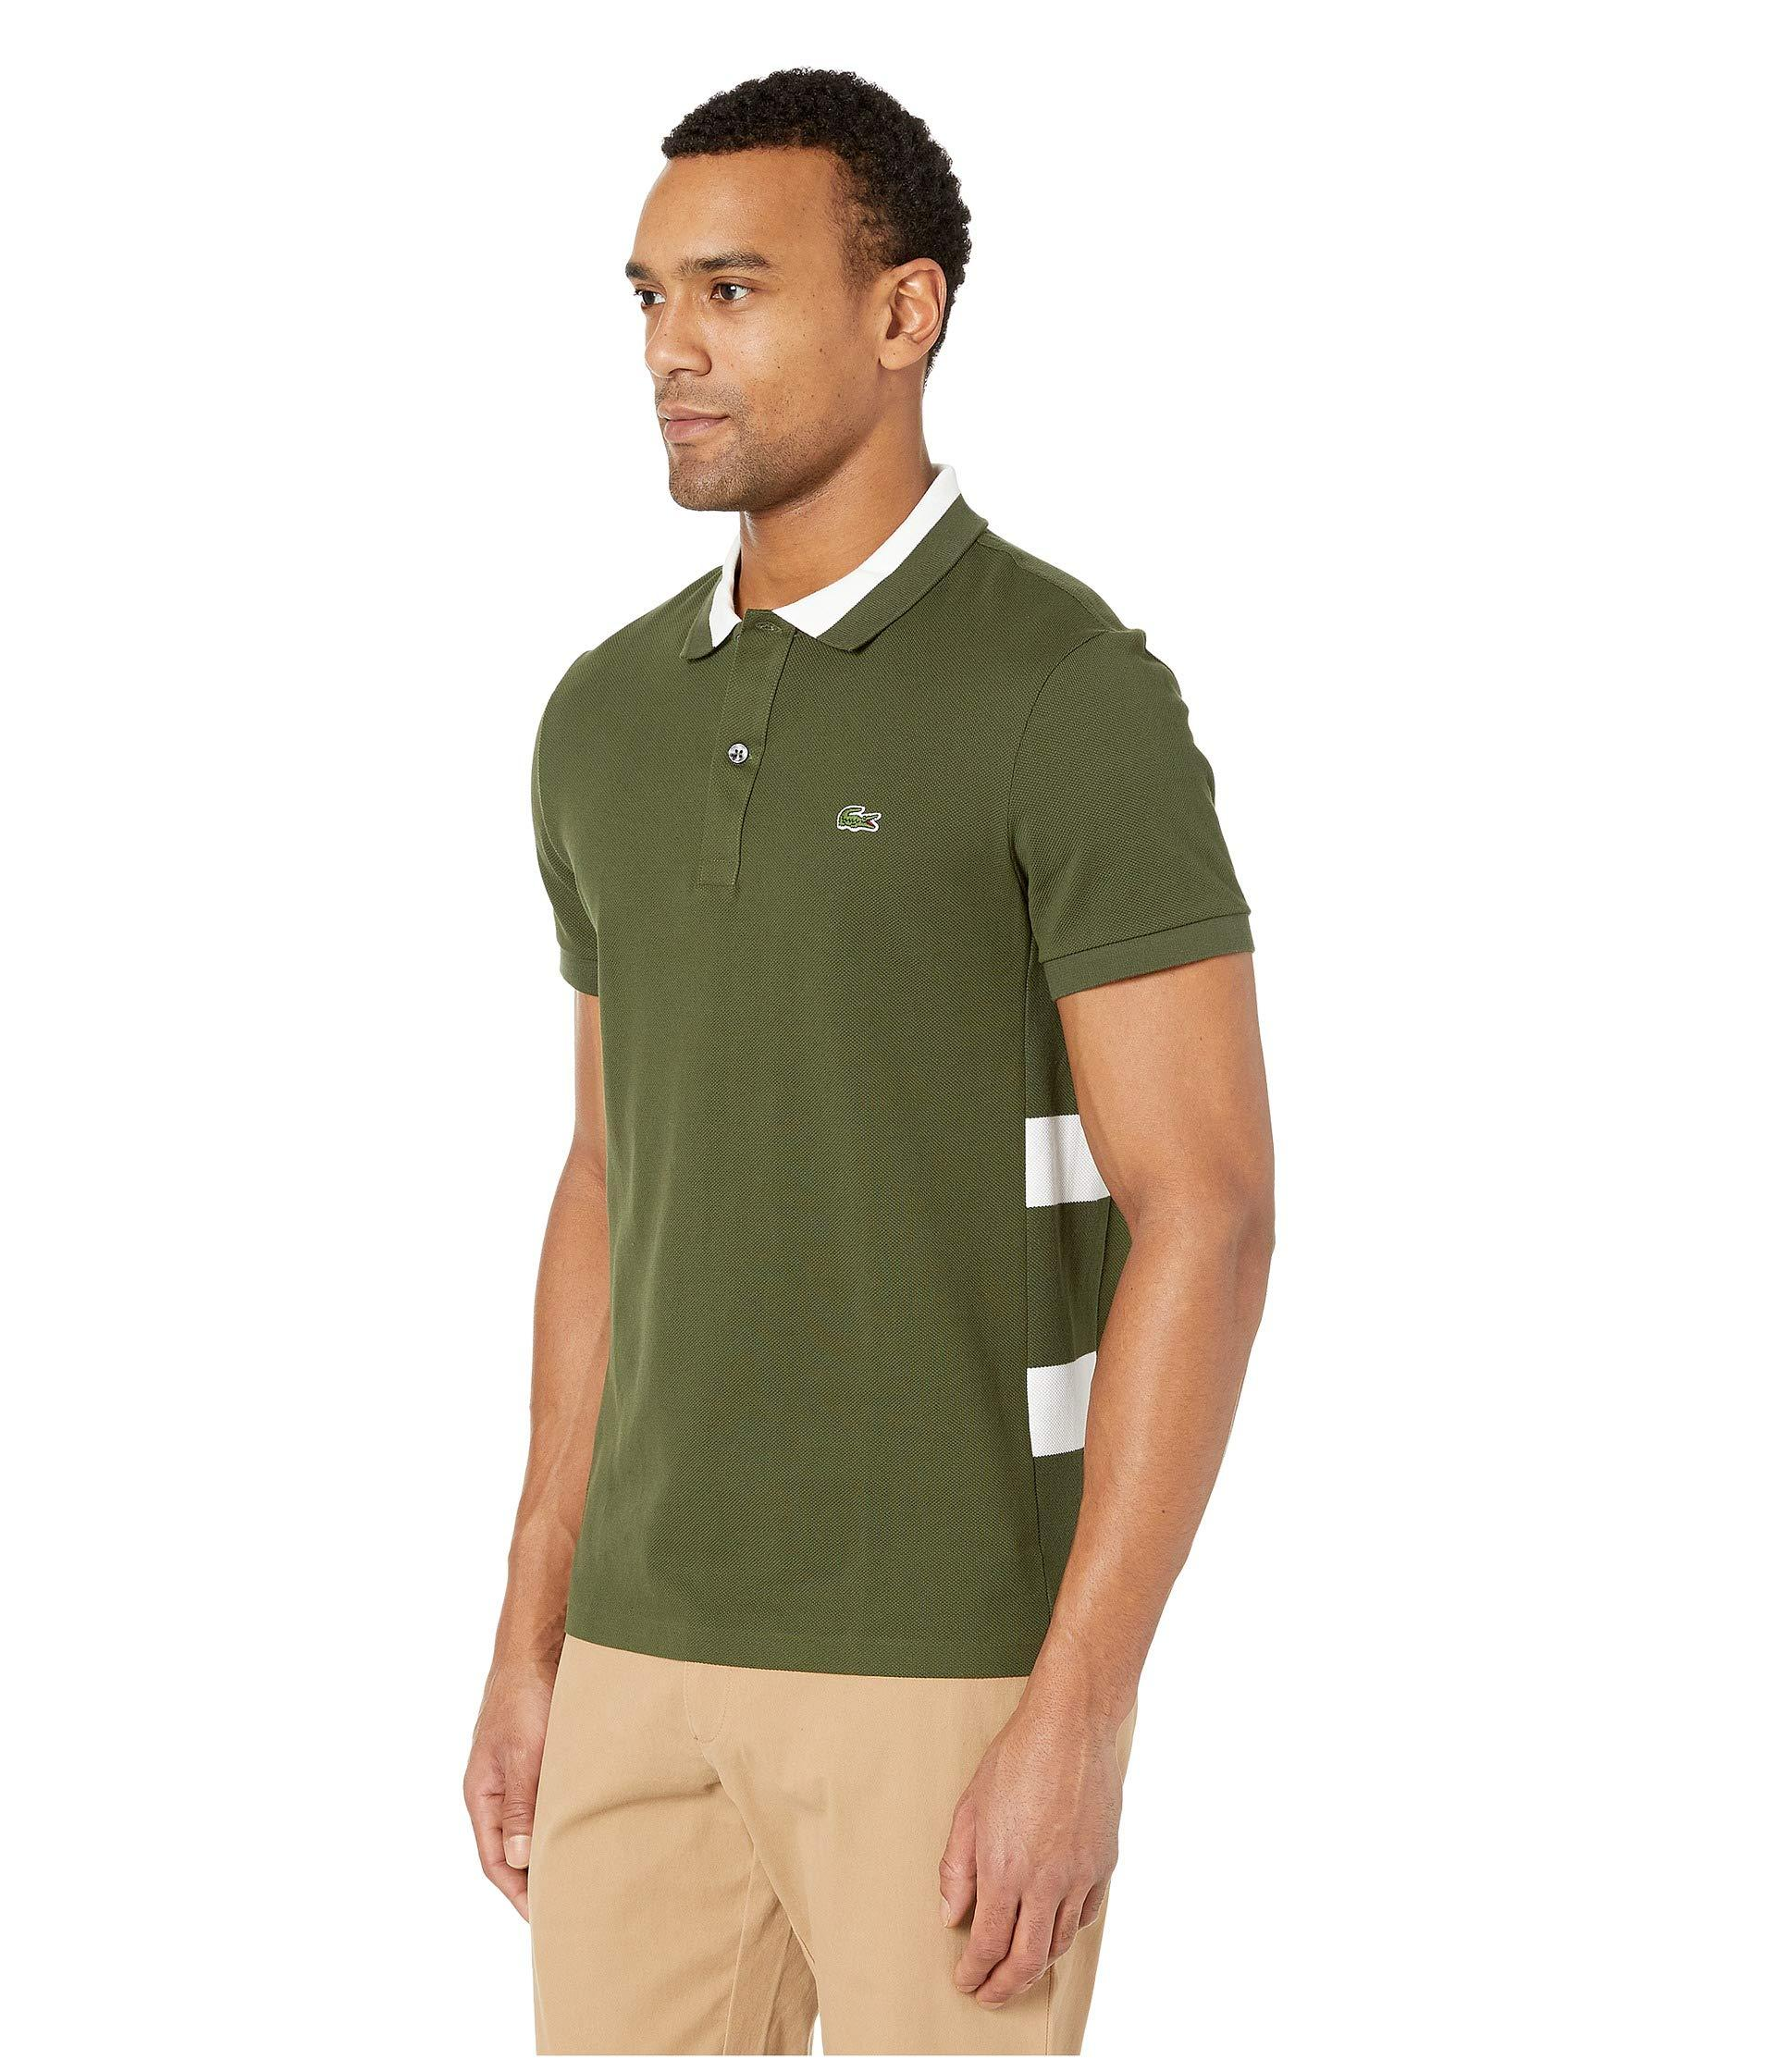 f41e61c7e Lacoste Short Sleeve 3 Ply Textured Pique Regular Fit Polo in Green for Men  - Save 43% - Lyst